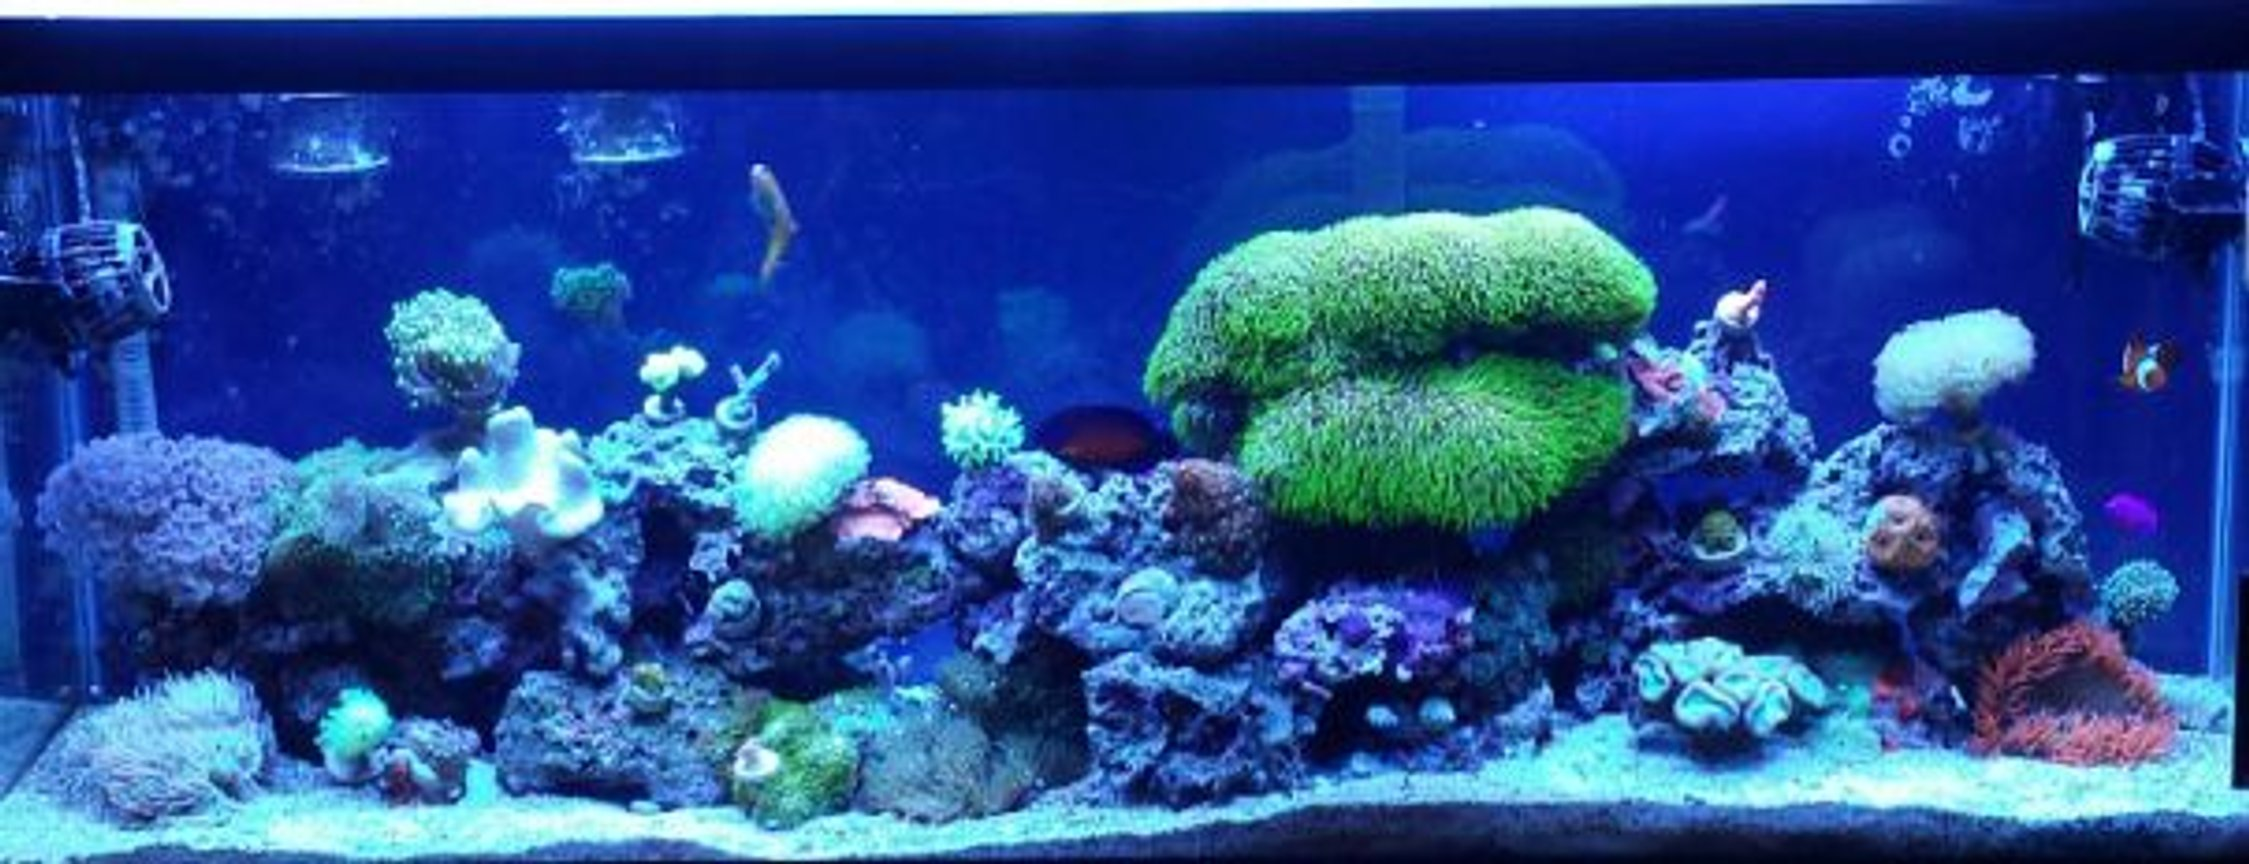 50 gallons reef tank (mostly live coral and fish) - My 50 gallon sumpless reef.